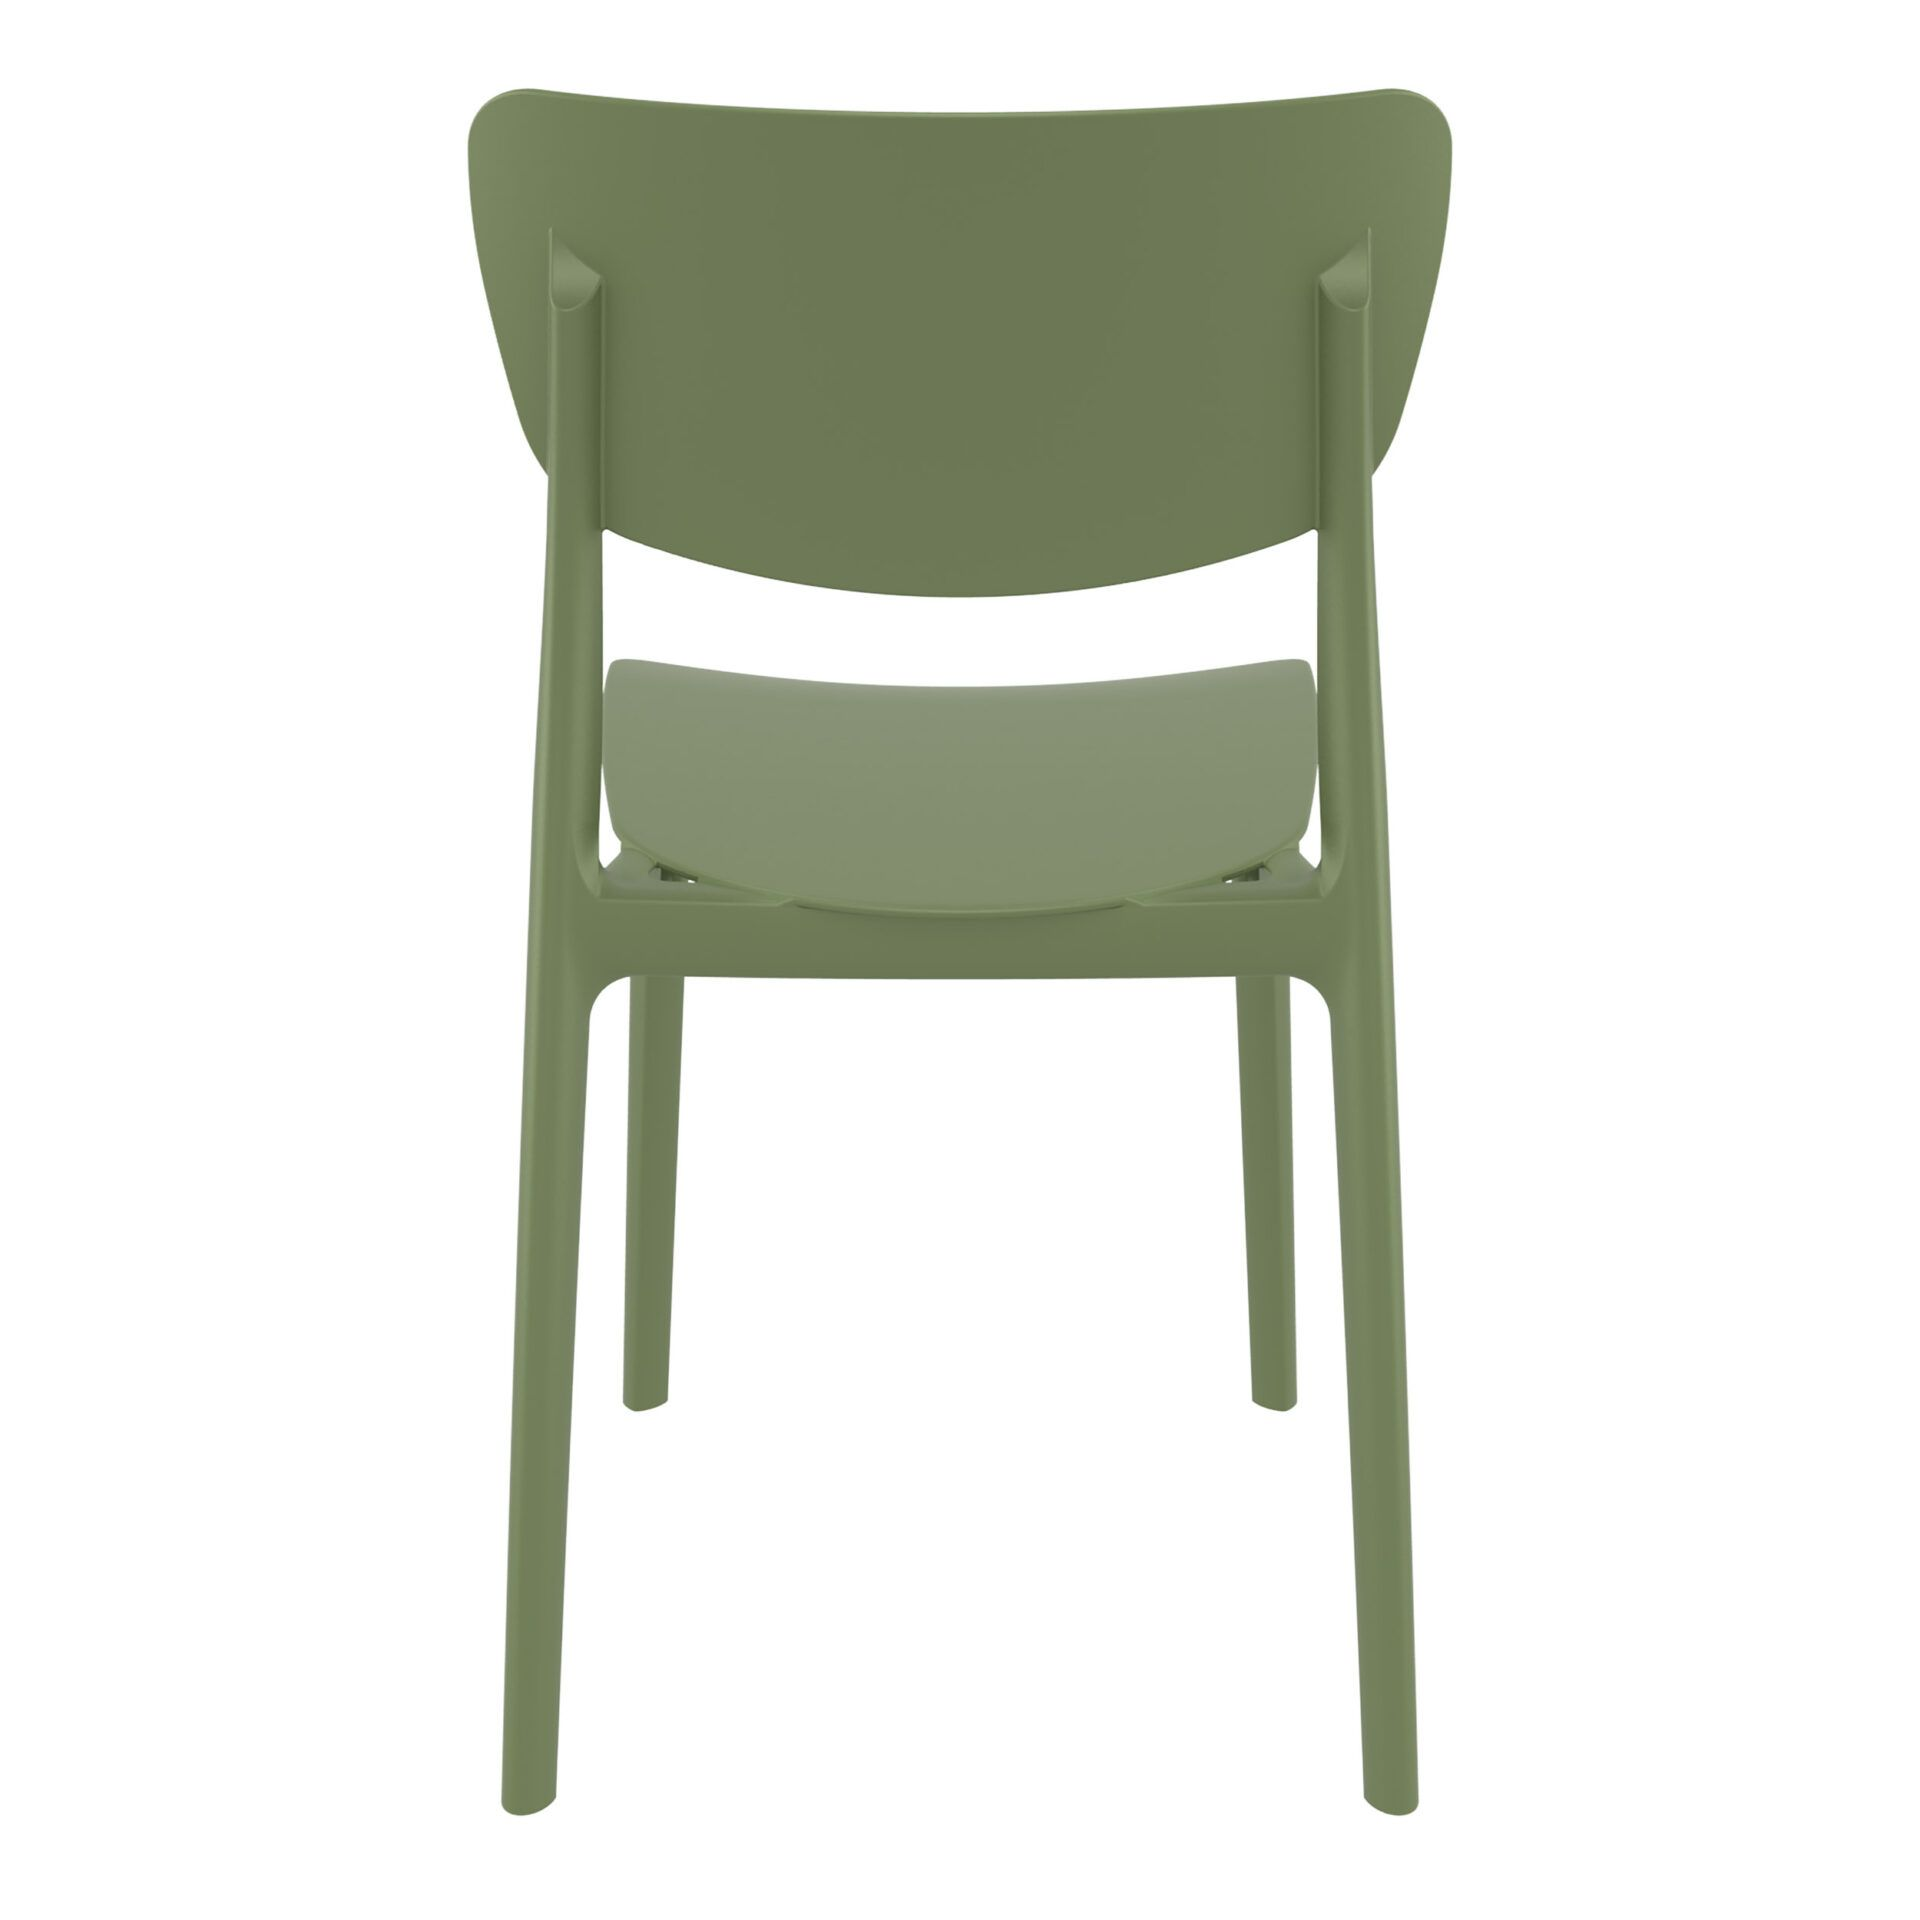 polypropylene outdoor dining monna chair olive green back